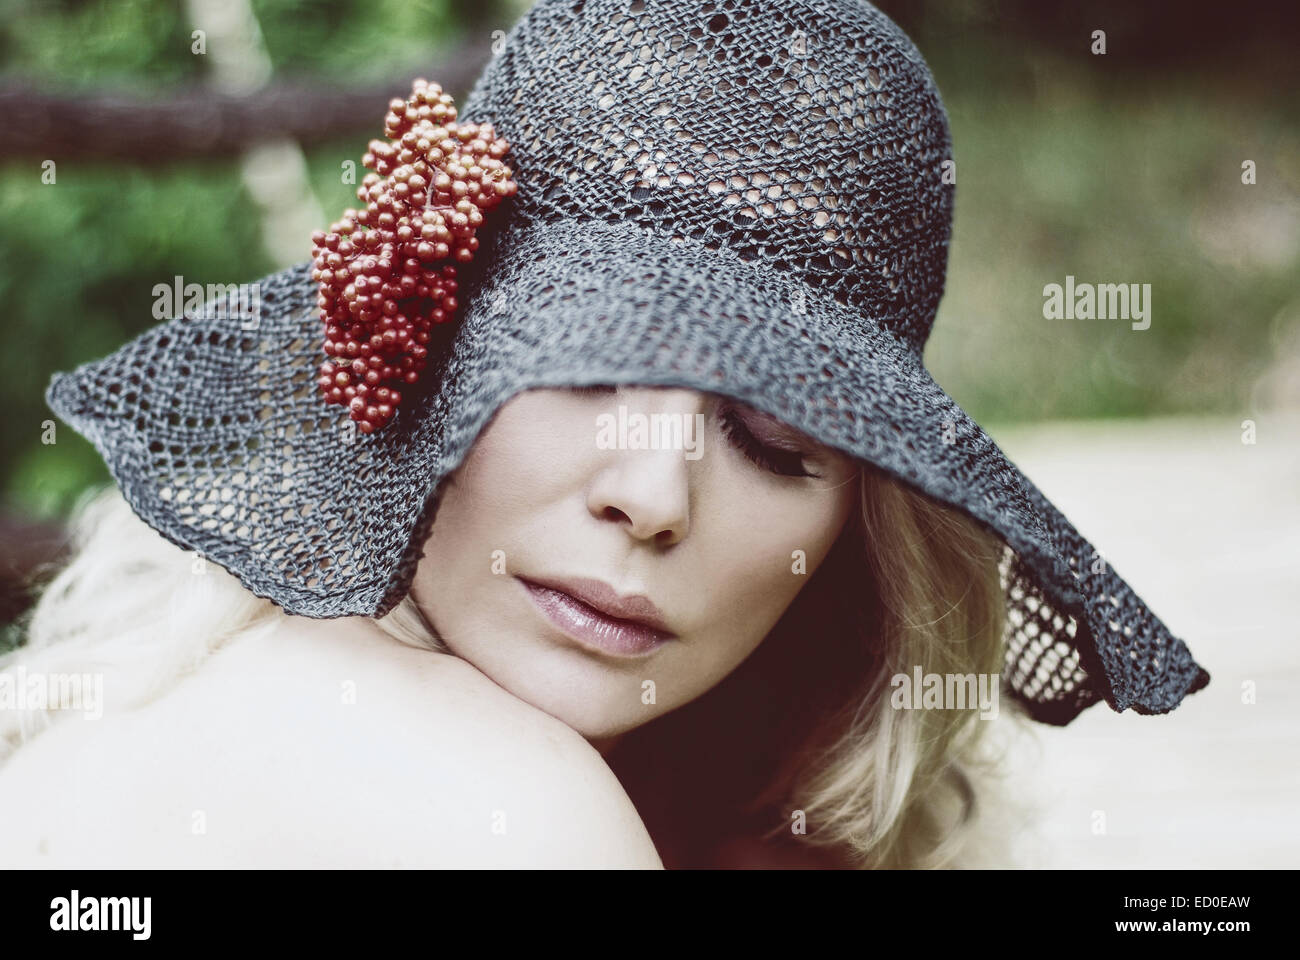 Portrait of woman in lace hat - Stock Image